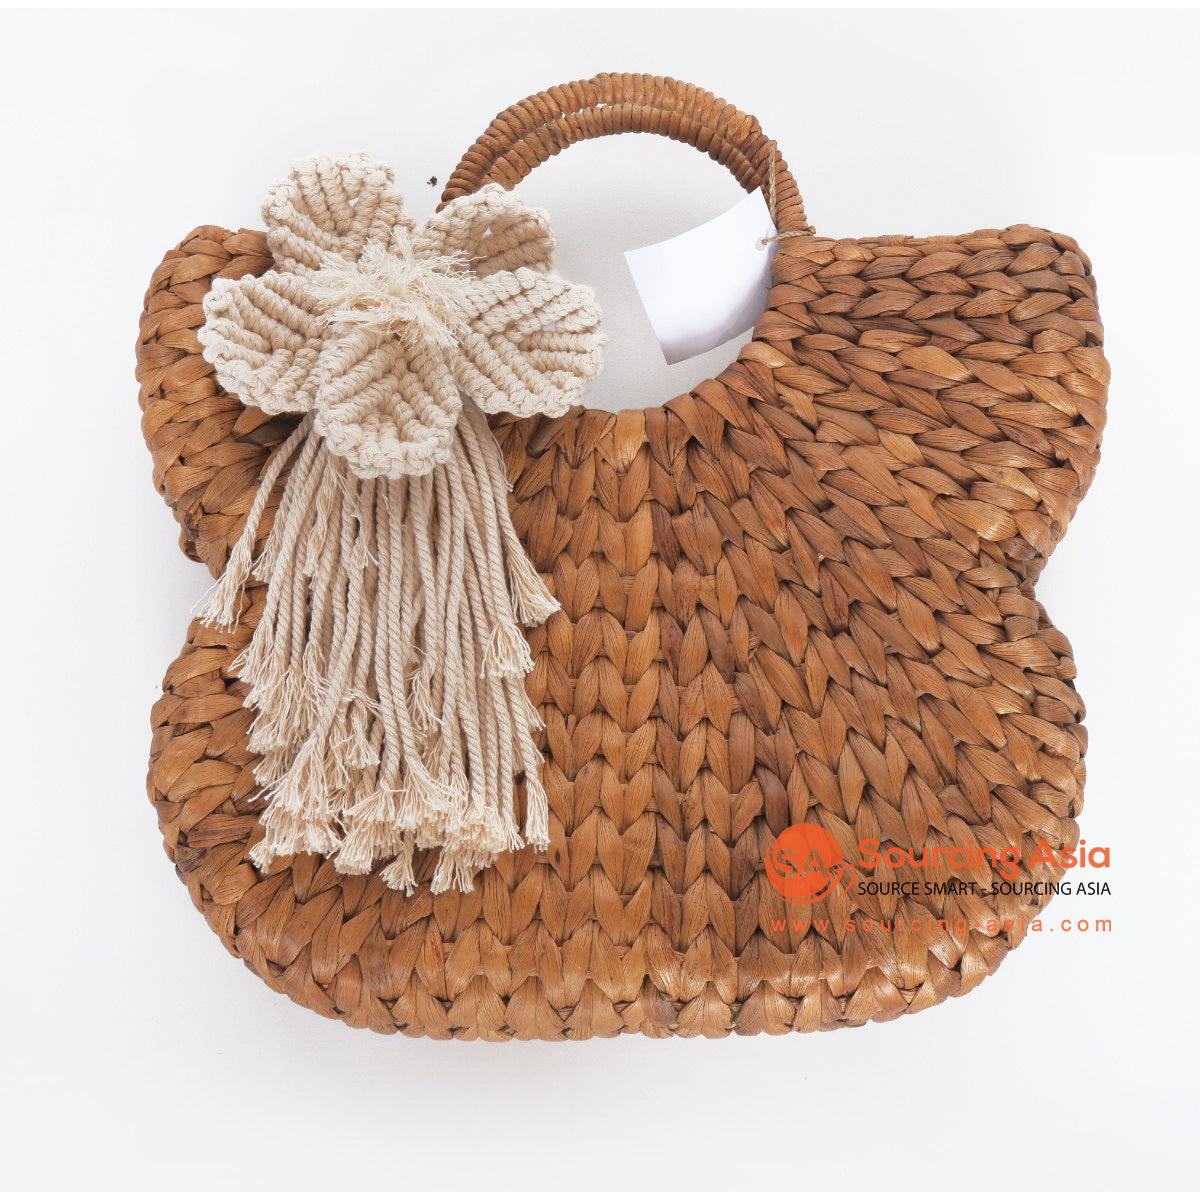 MRC296 NATURAL WATER HYACINTH HANDBAG WITH MACRAME FLOWER DECORATION